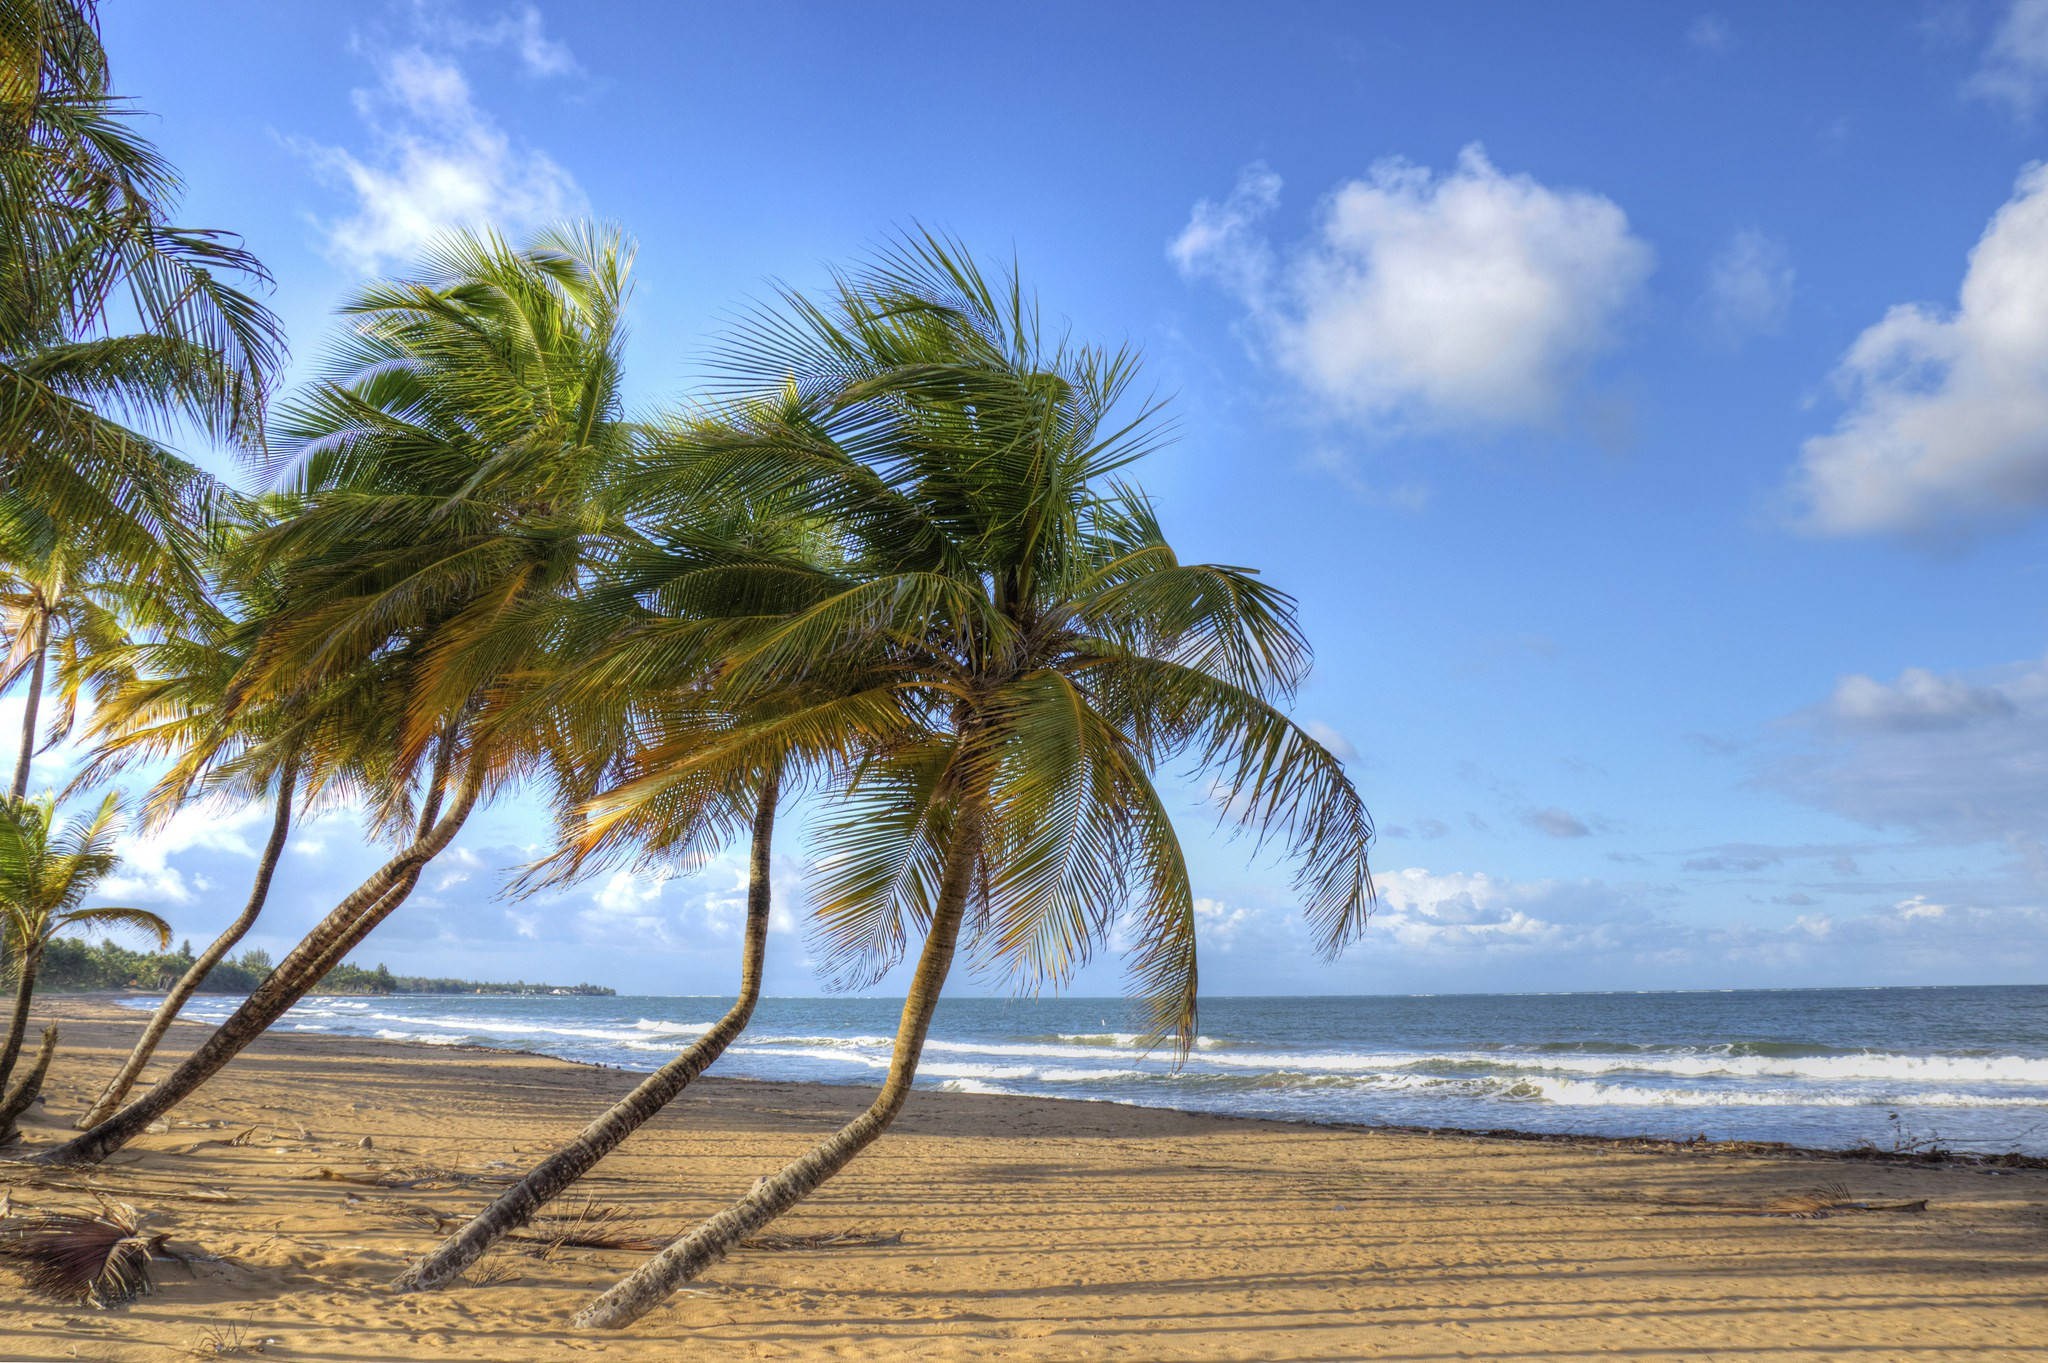 7 Things You Can Do With Kids in Puerto Rico